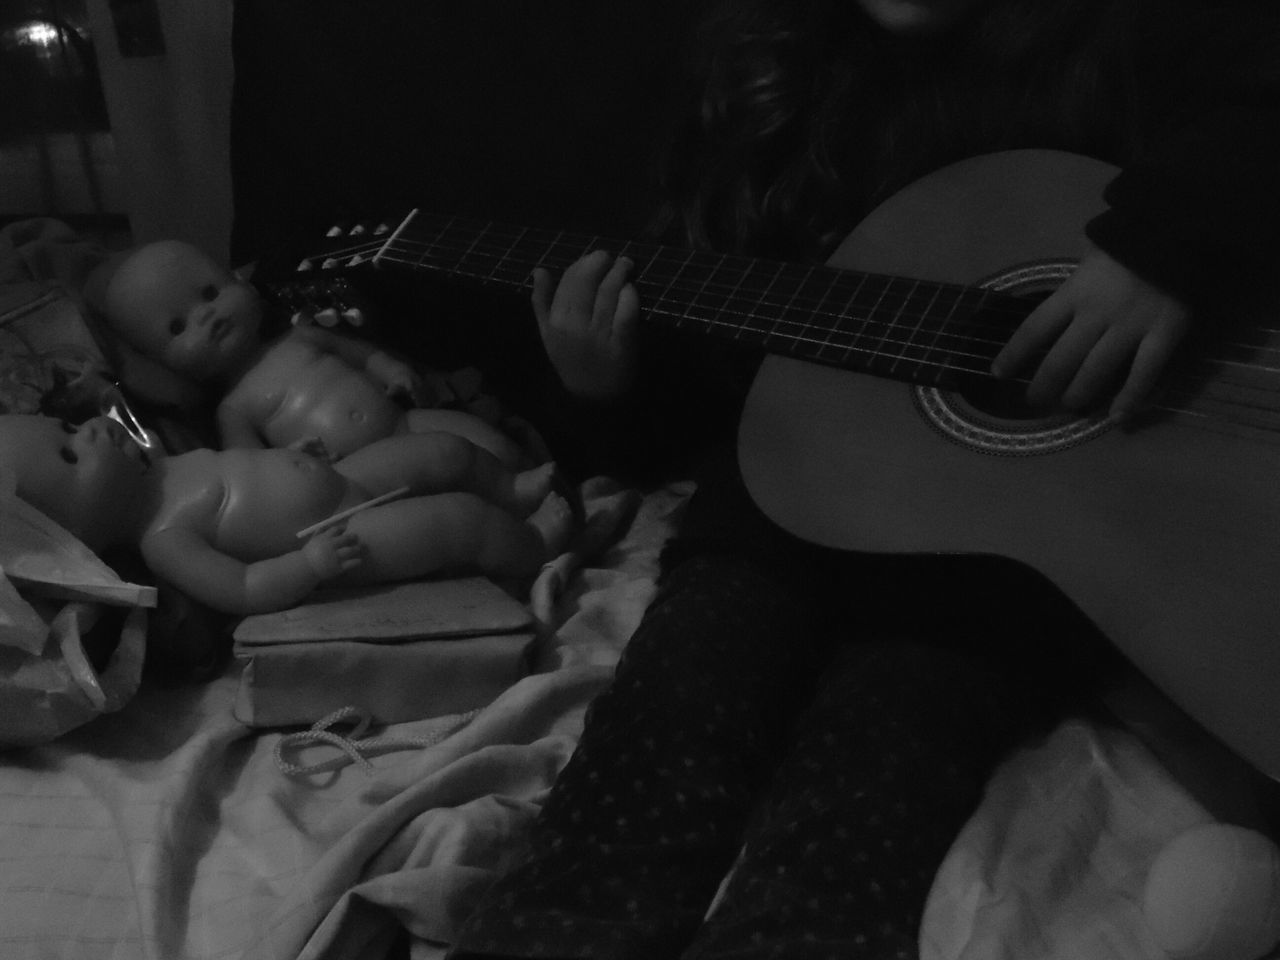 Playing for the doll... Monochrome Photography EyeEm Gallery Personal Perspective EyeEm Best Shots Indoors  Kids Of EyeEm Children Photography Playing The Guitar Musical Instrument Doll Photography Black & White Black And White Monochrome Black And White Photography Human Body Part Girl Uniqueness